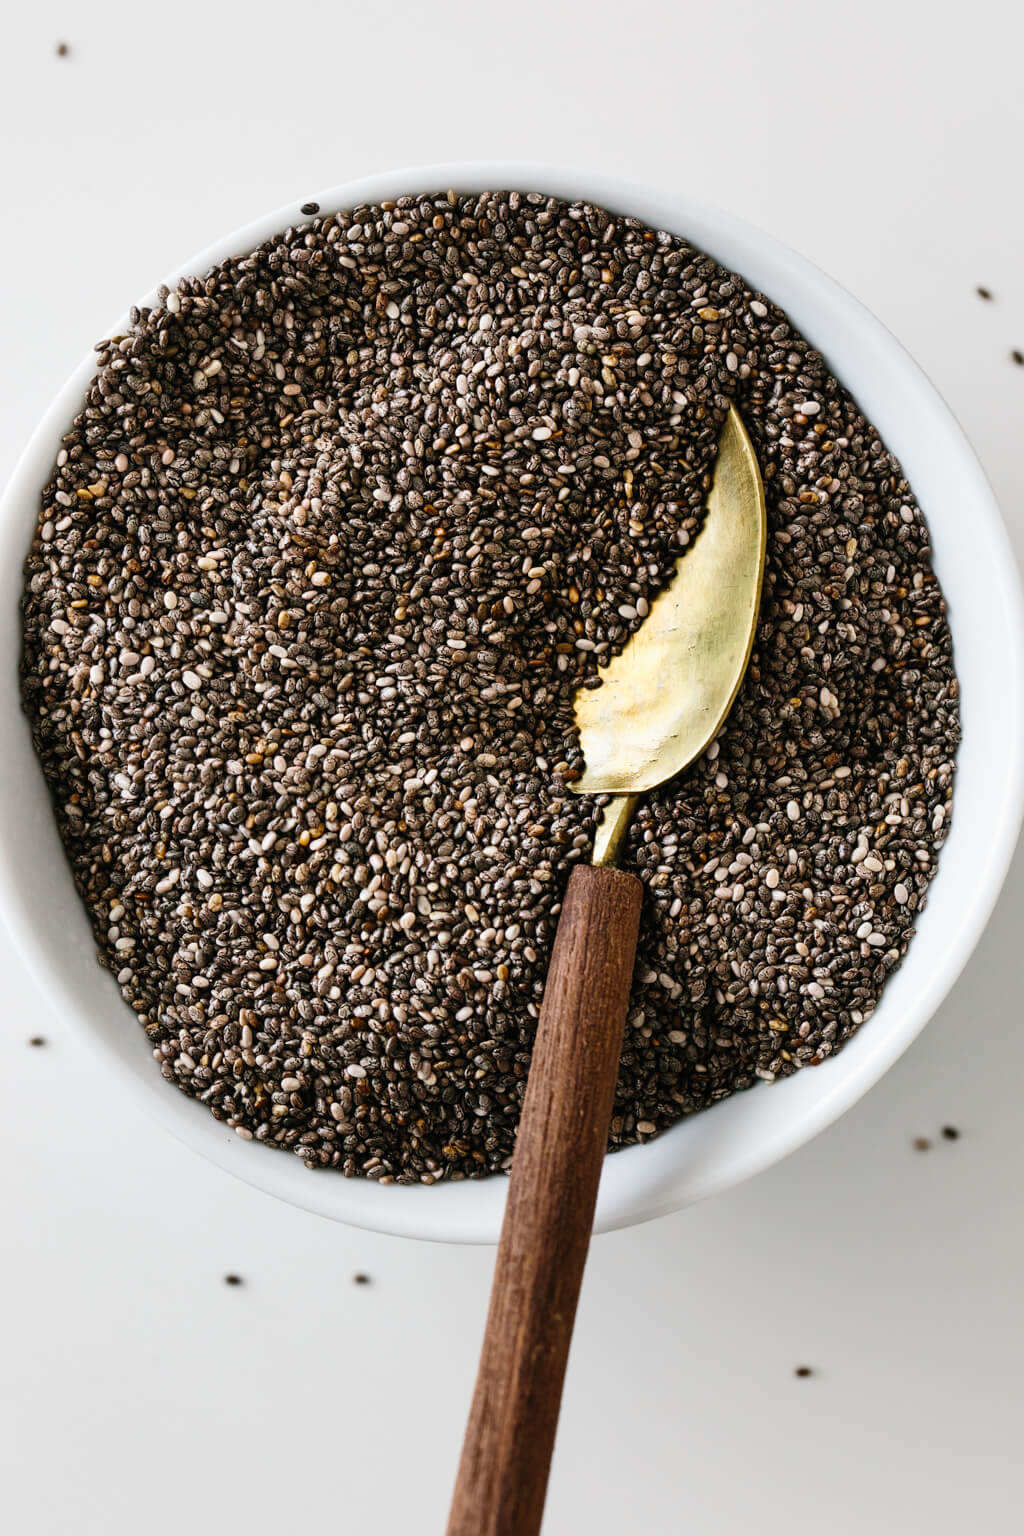 Chia seeds in white bowl with gold spoon.